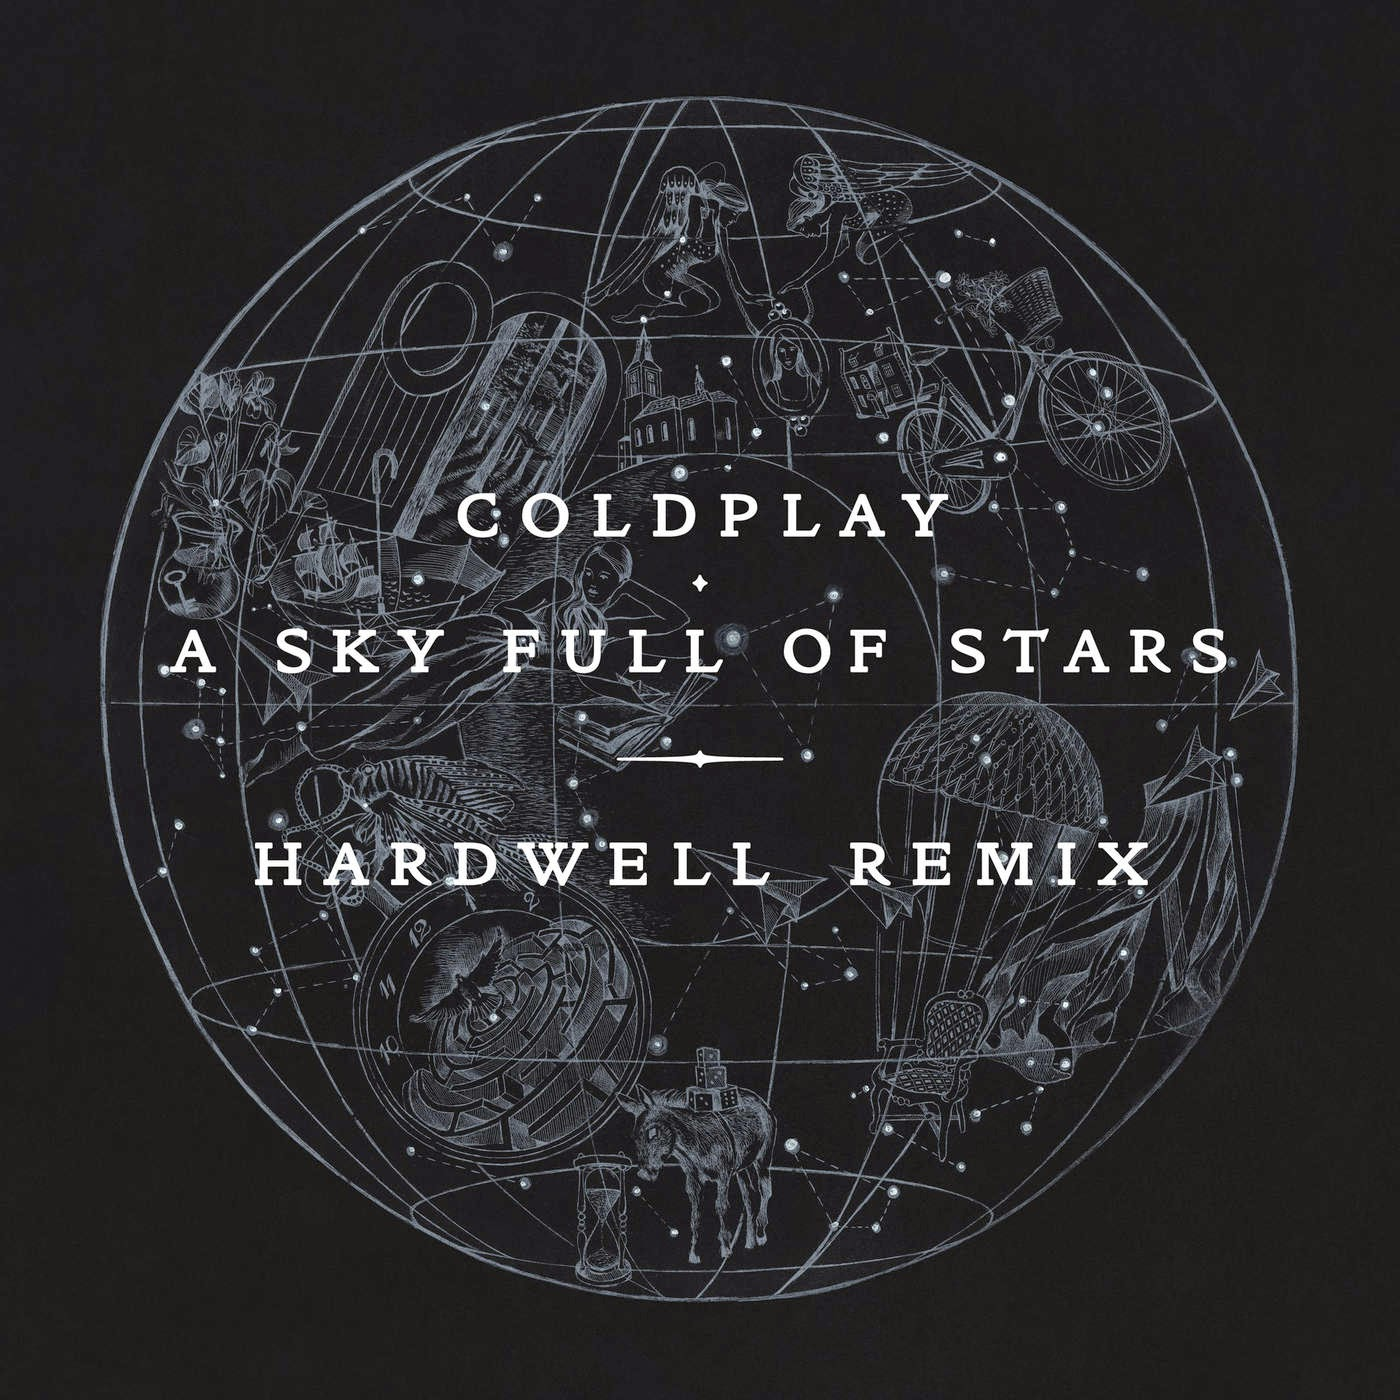 Coldplay - A Sky Full of Stars (Hardwell Remix) - Single Cover